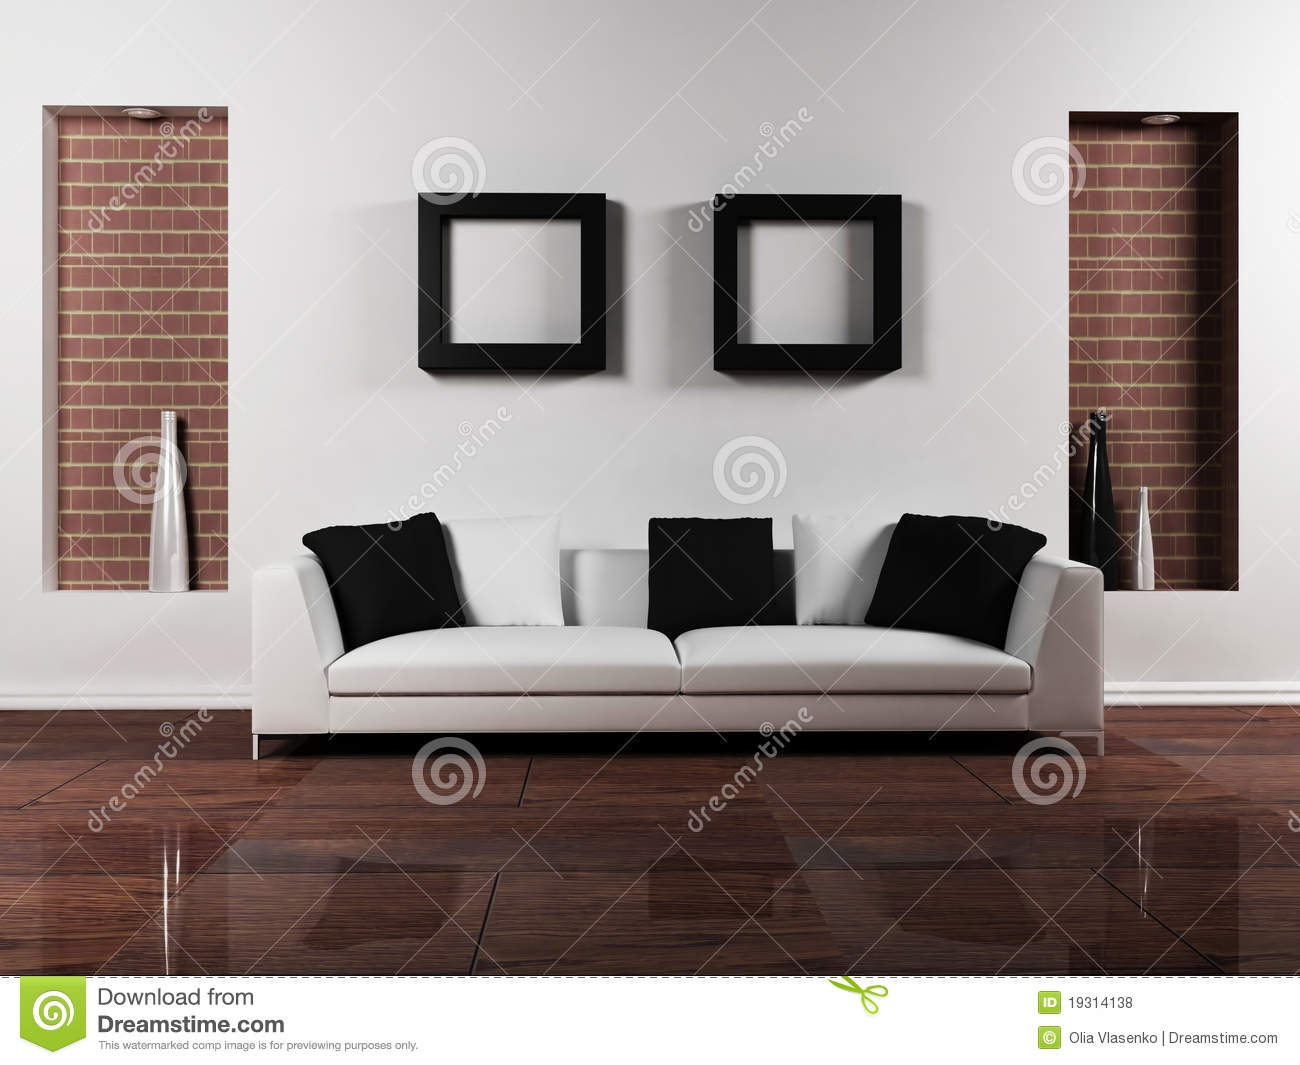 Modern interior design of living room royalty free stock for Drawing room interior design photos